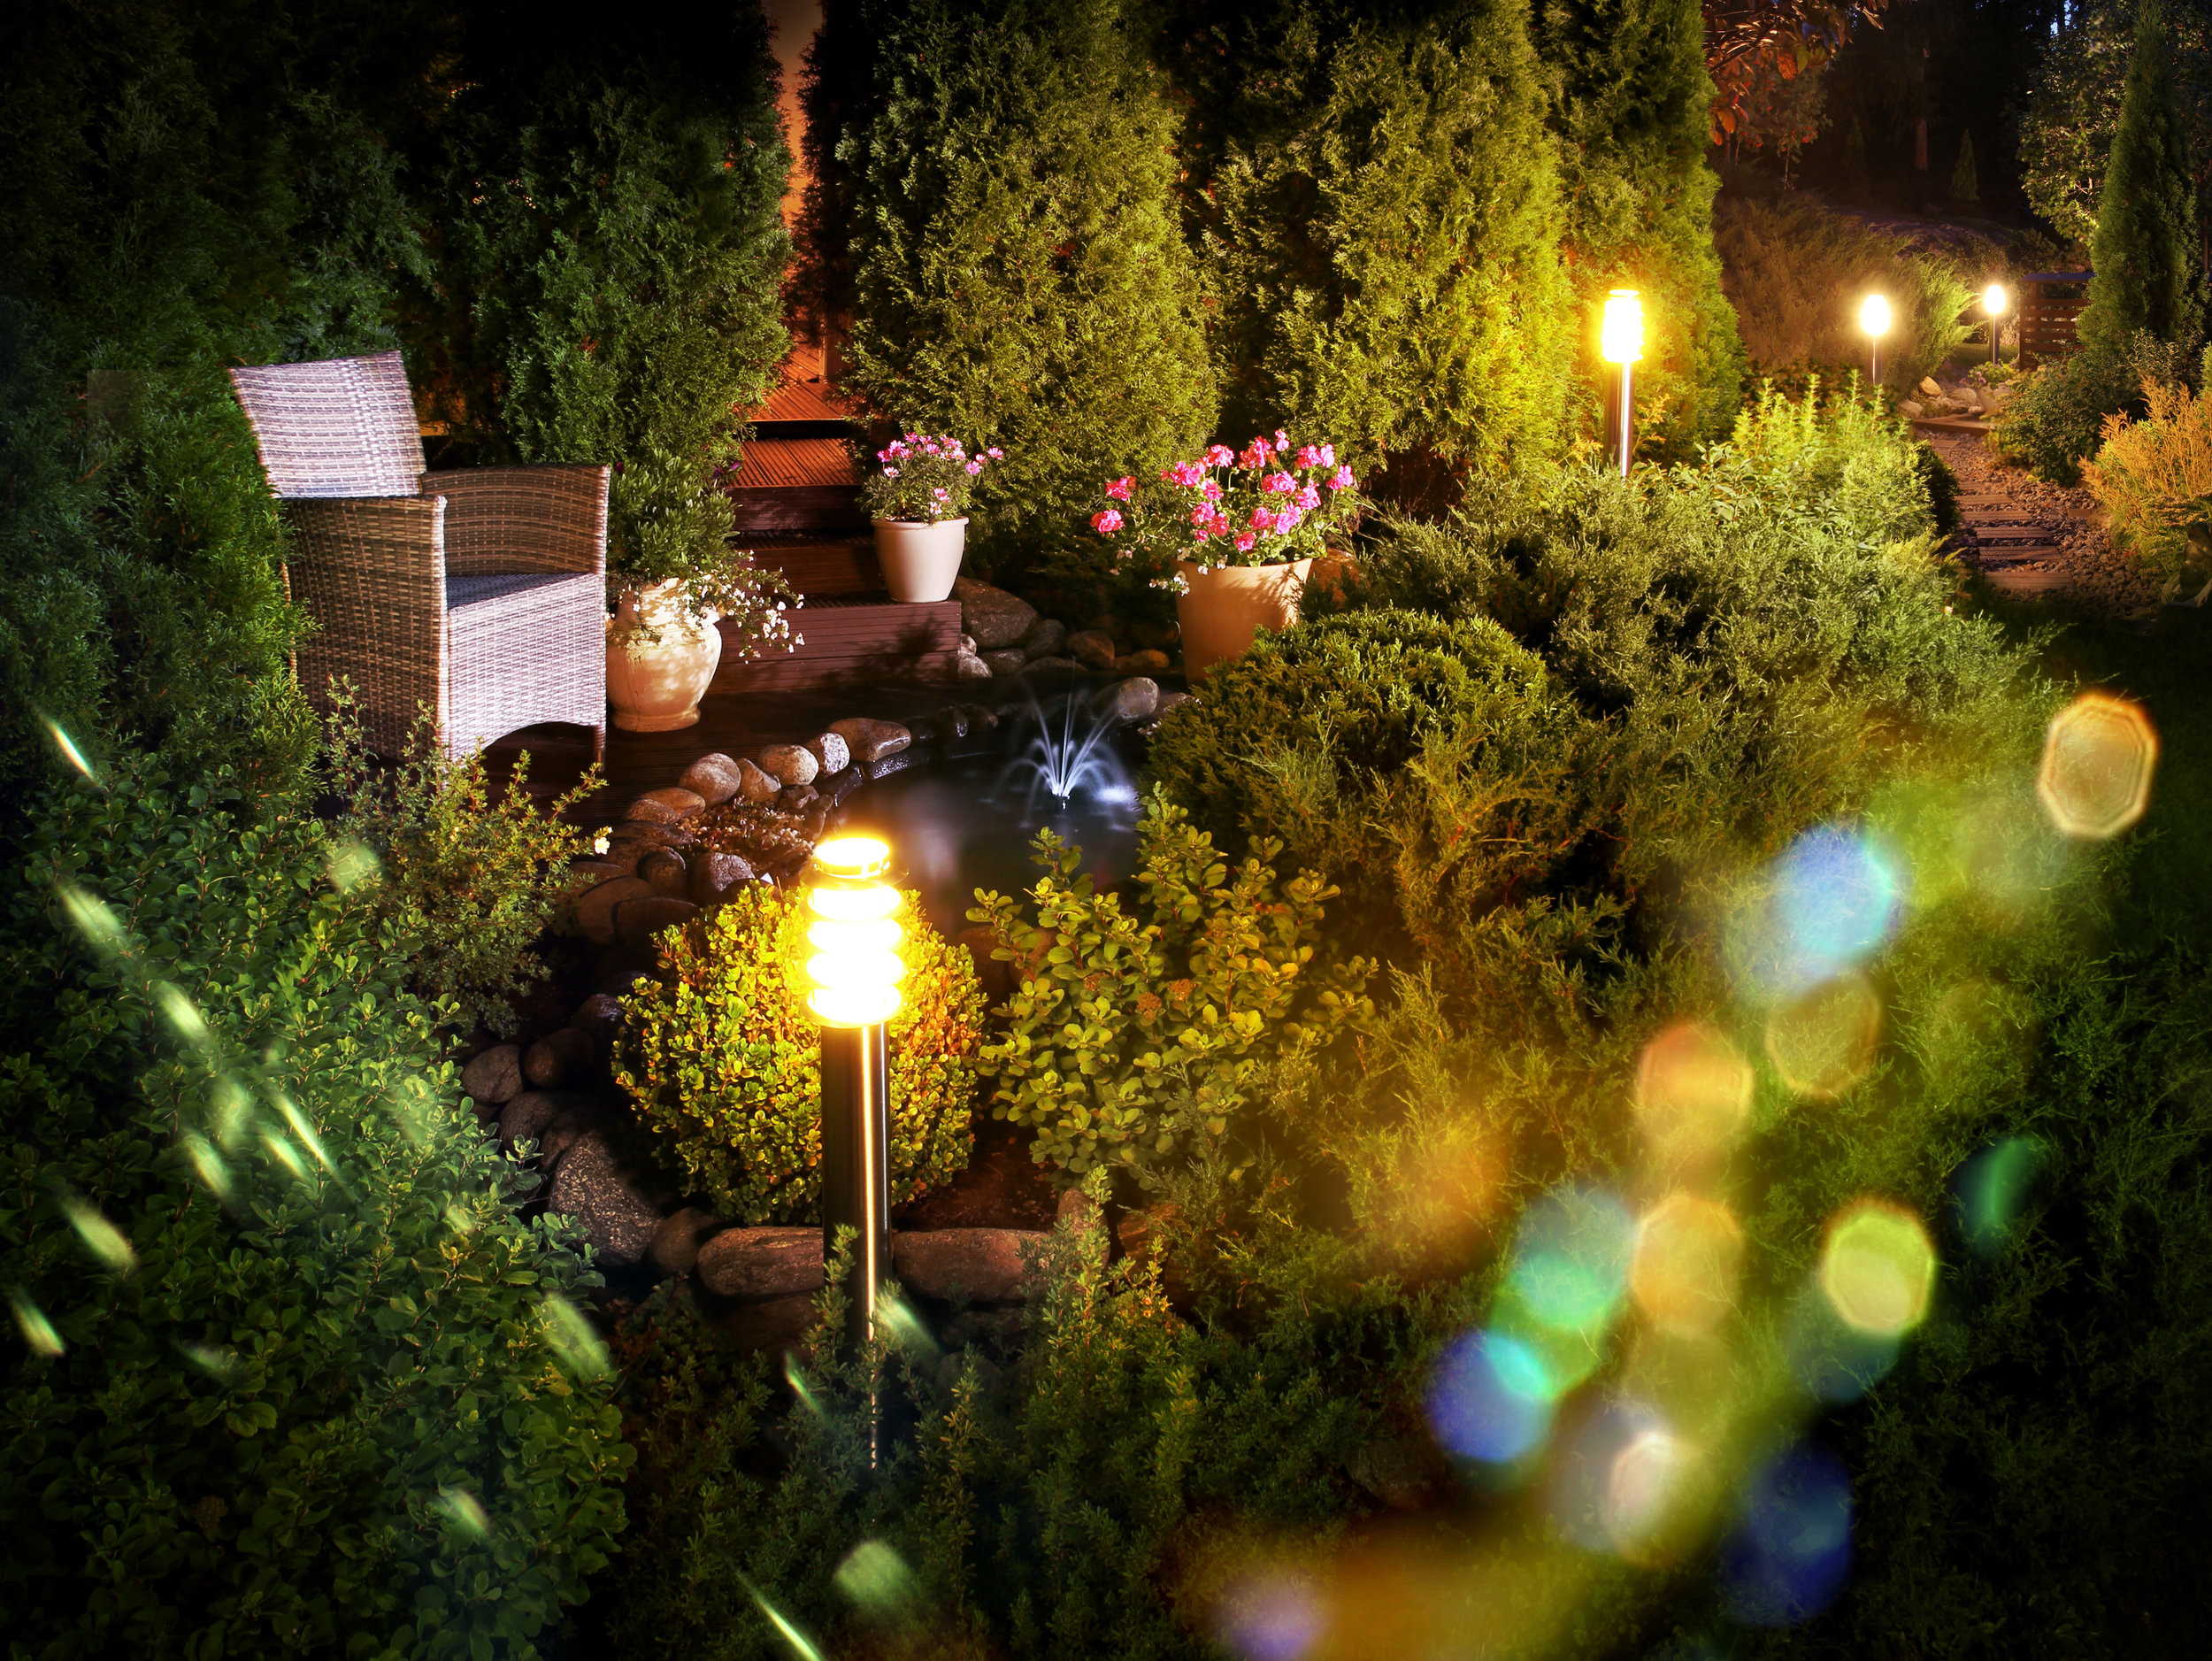 Improve Your Landscape Project with Beautiful Path Lighting from Our Garden Supply Store in the York, PA, Area